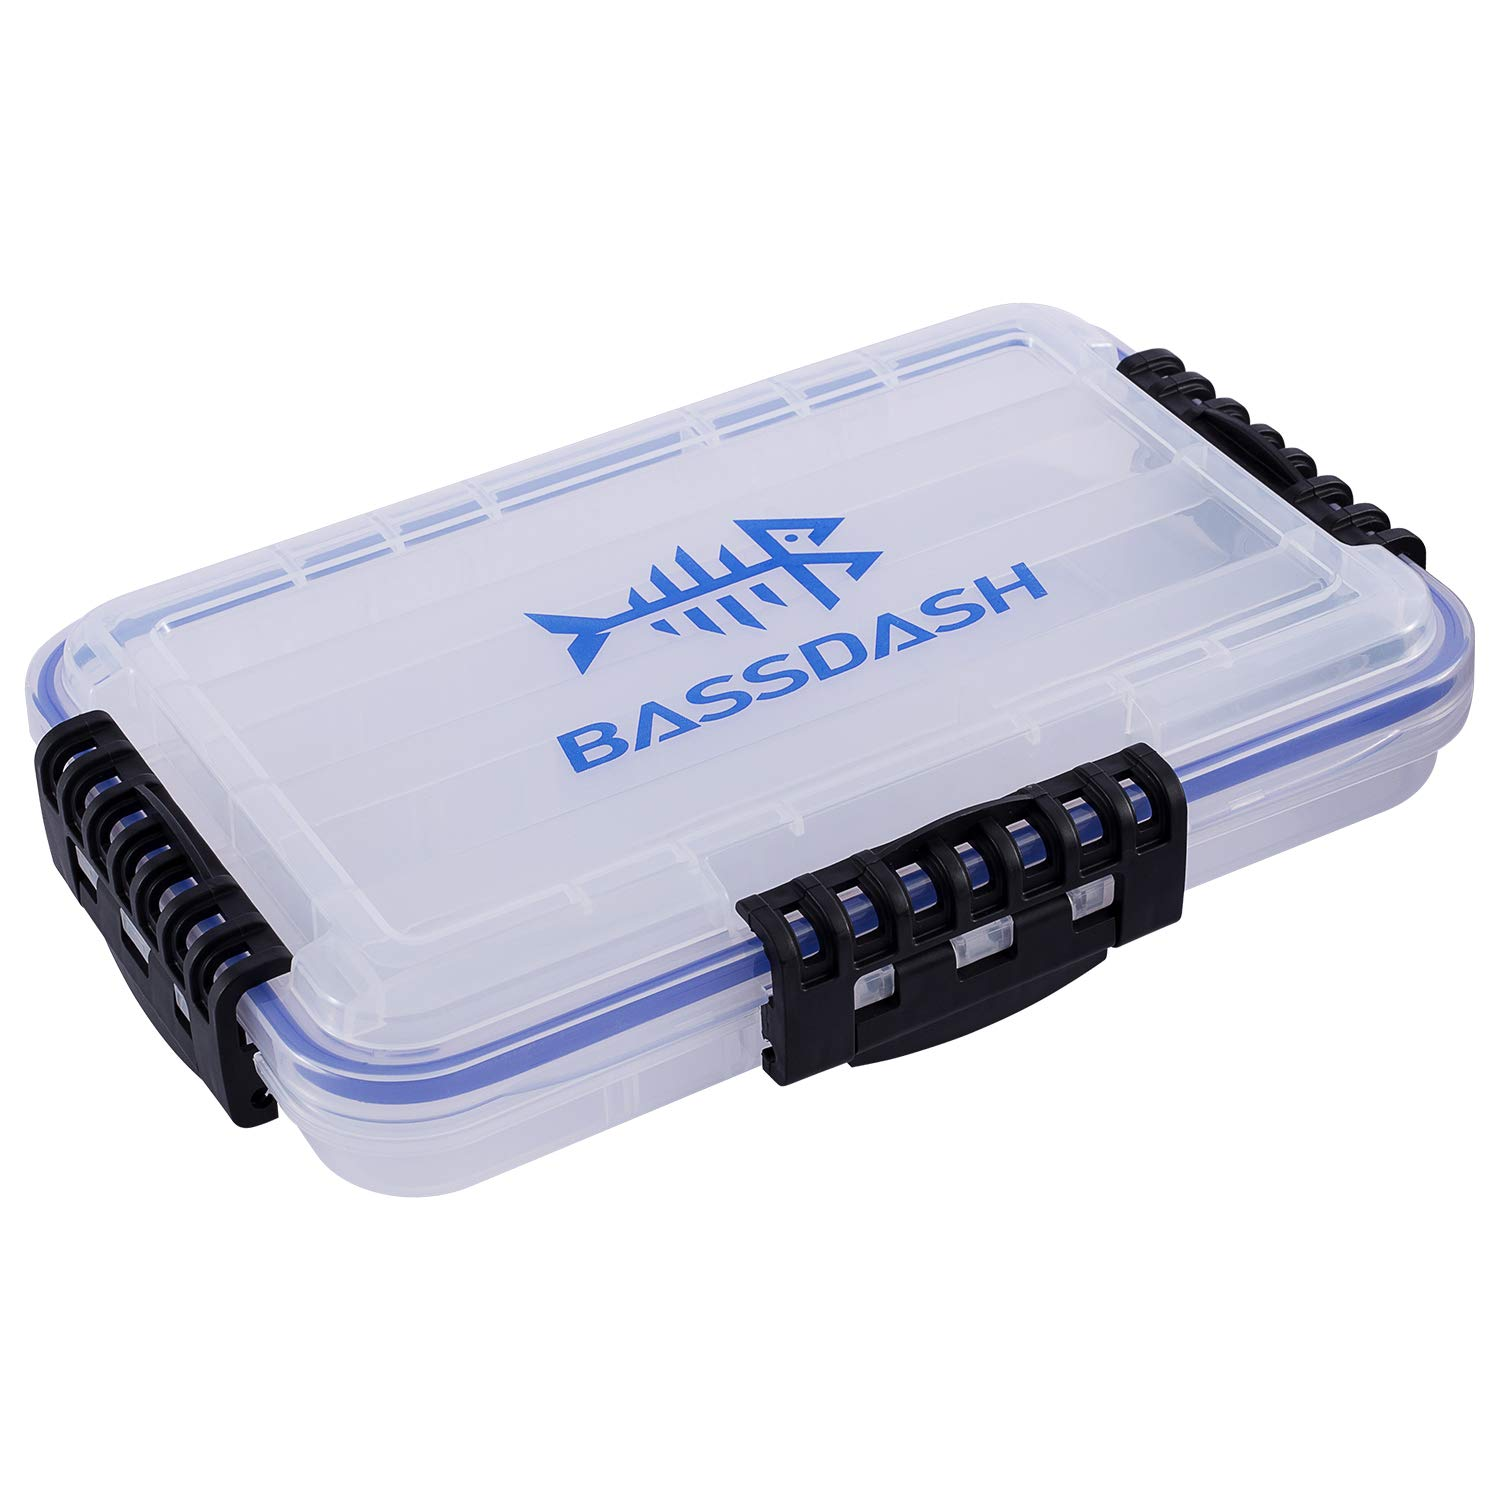 Bassdash 3600 3670 3700 Tackle Storage Waterproof Utility Tackle Boxes Fishing Lure Tray with Adjustable dividers by Bassdash